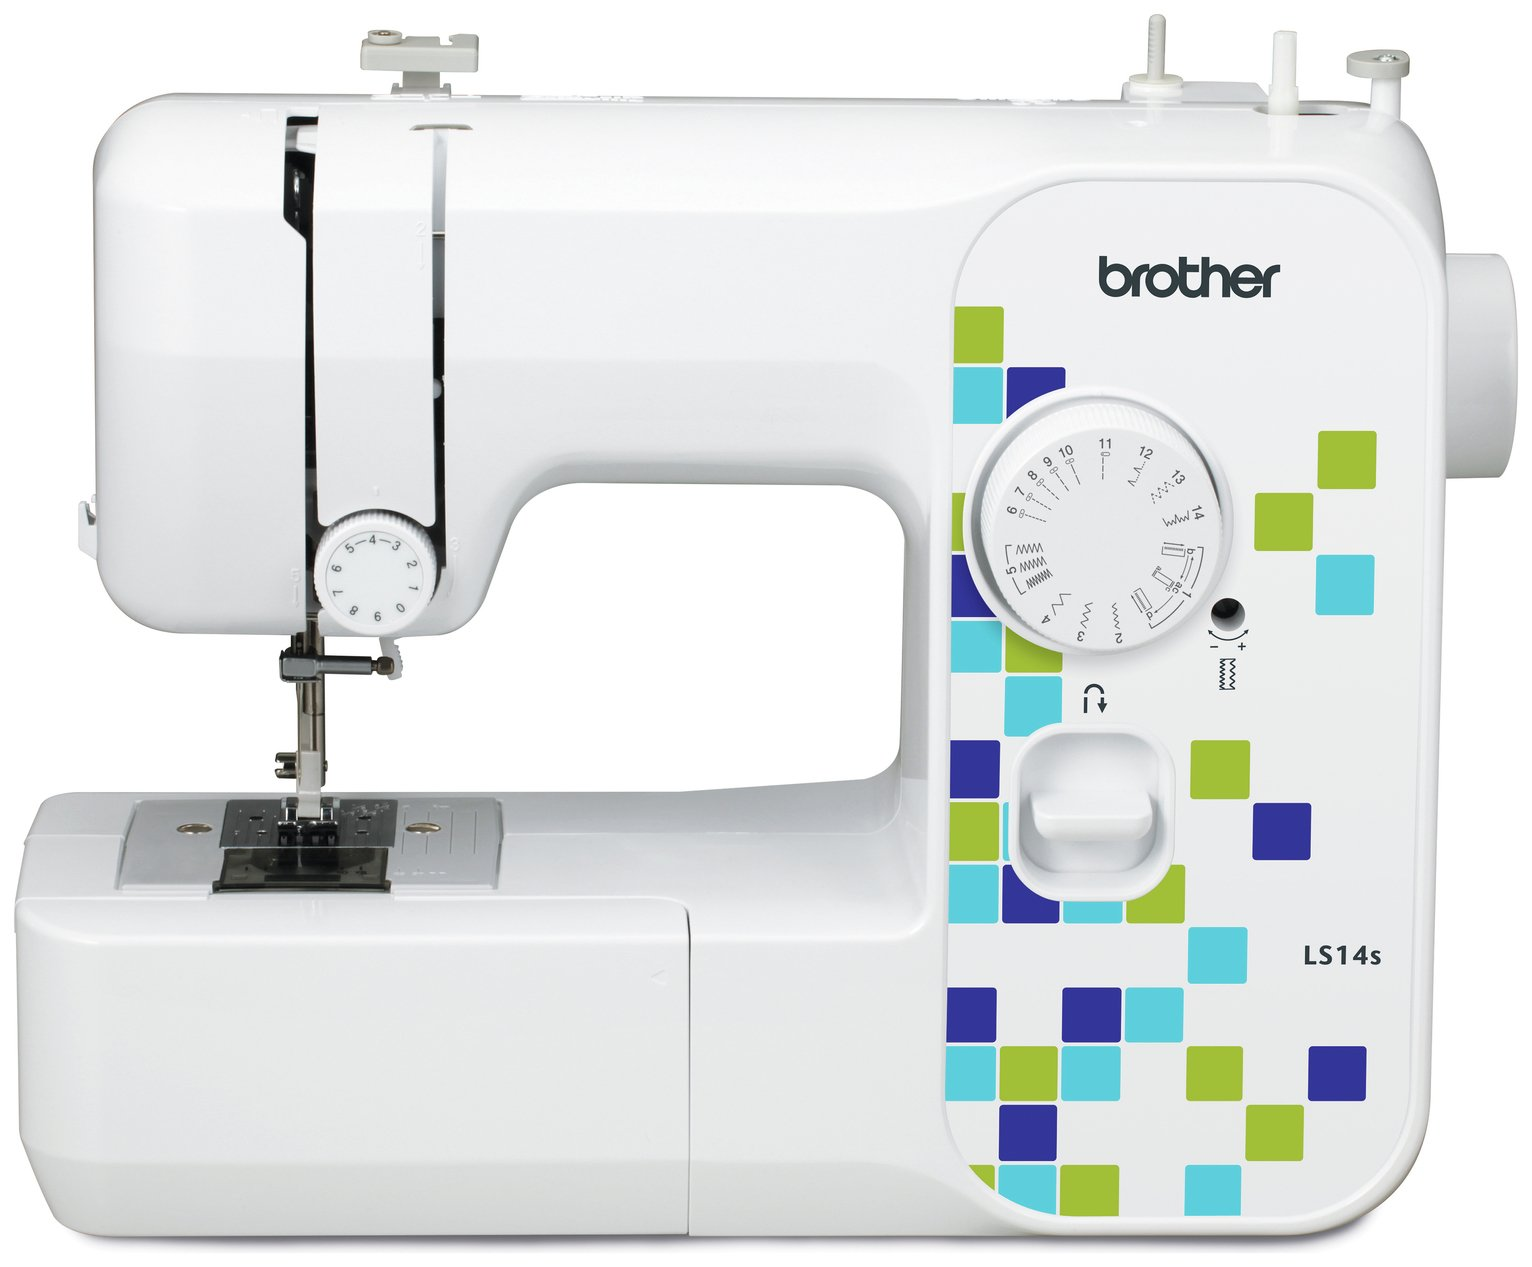 Brother - LS14 Manual Stitch Sewing Machine - White from Brother